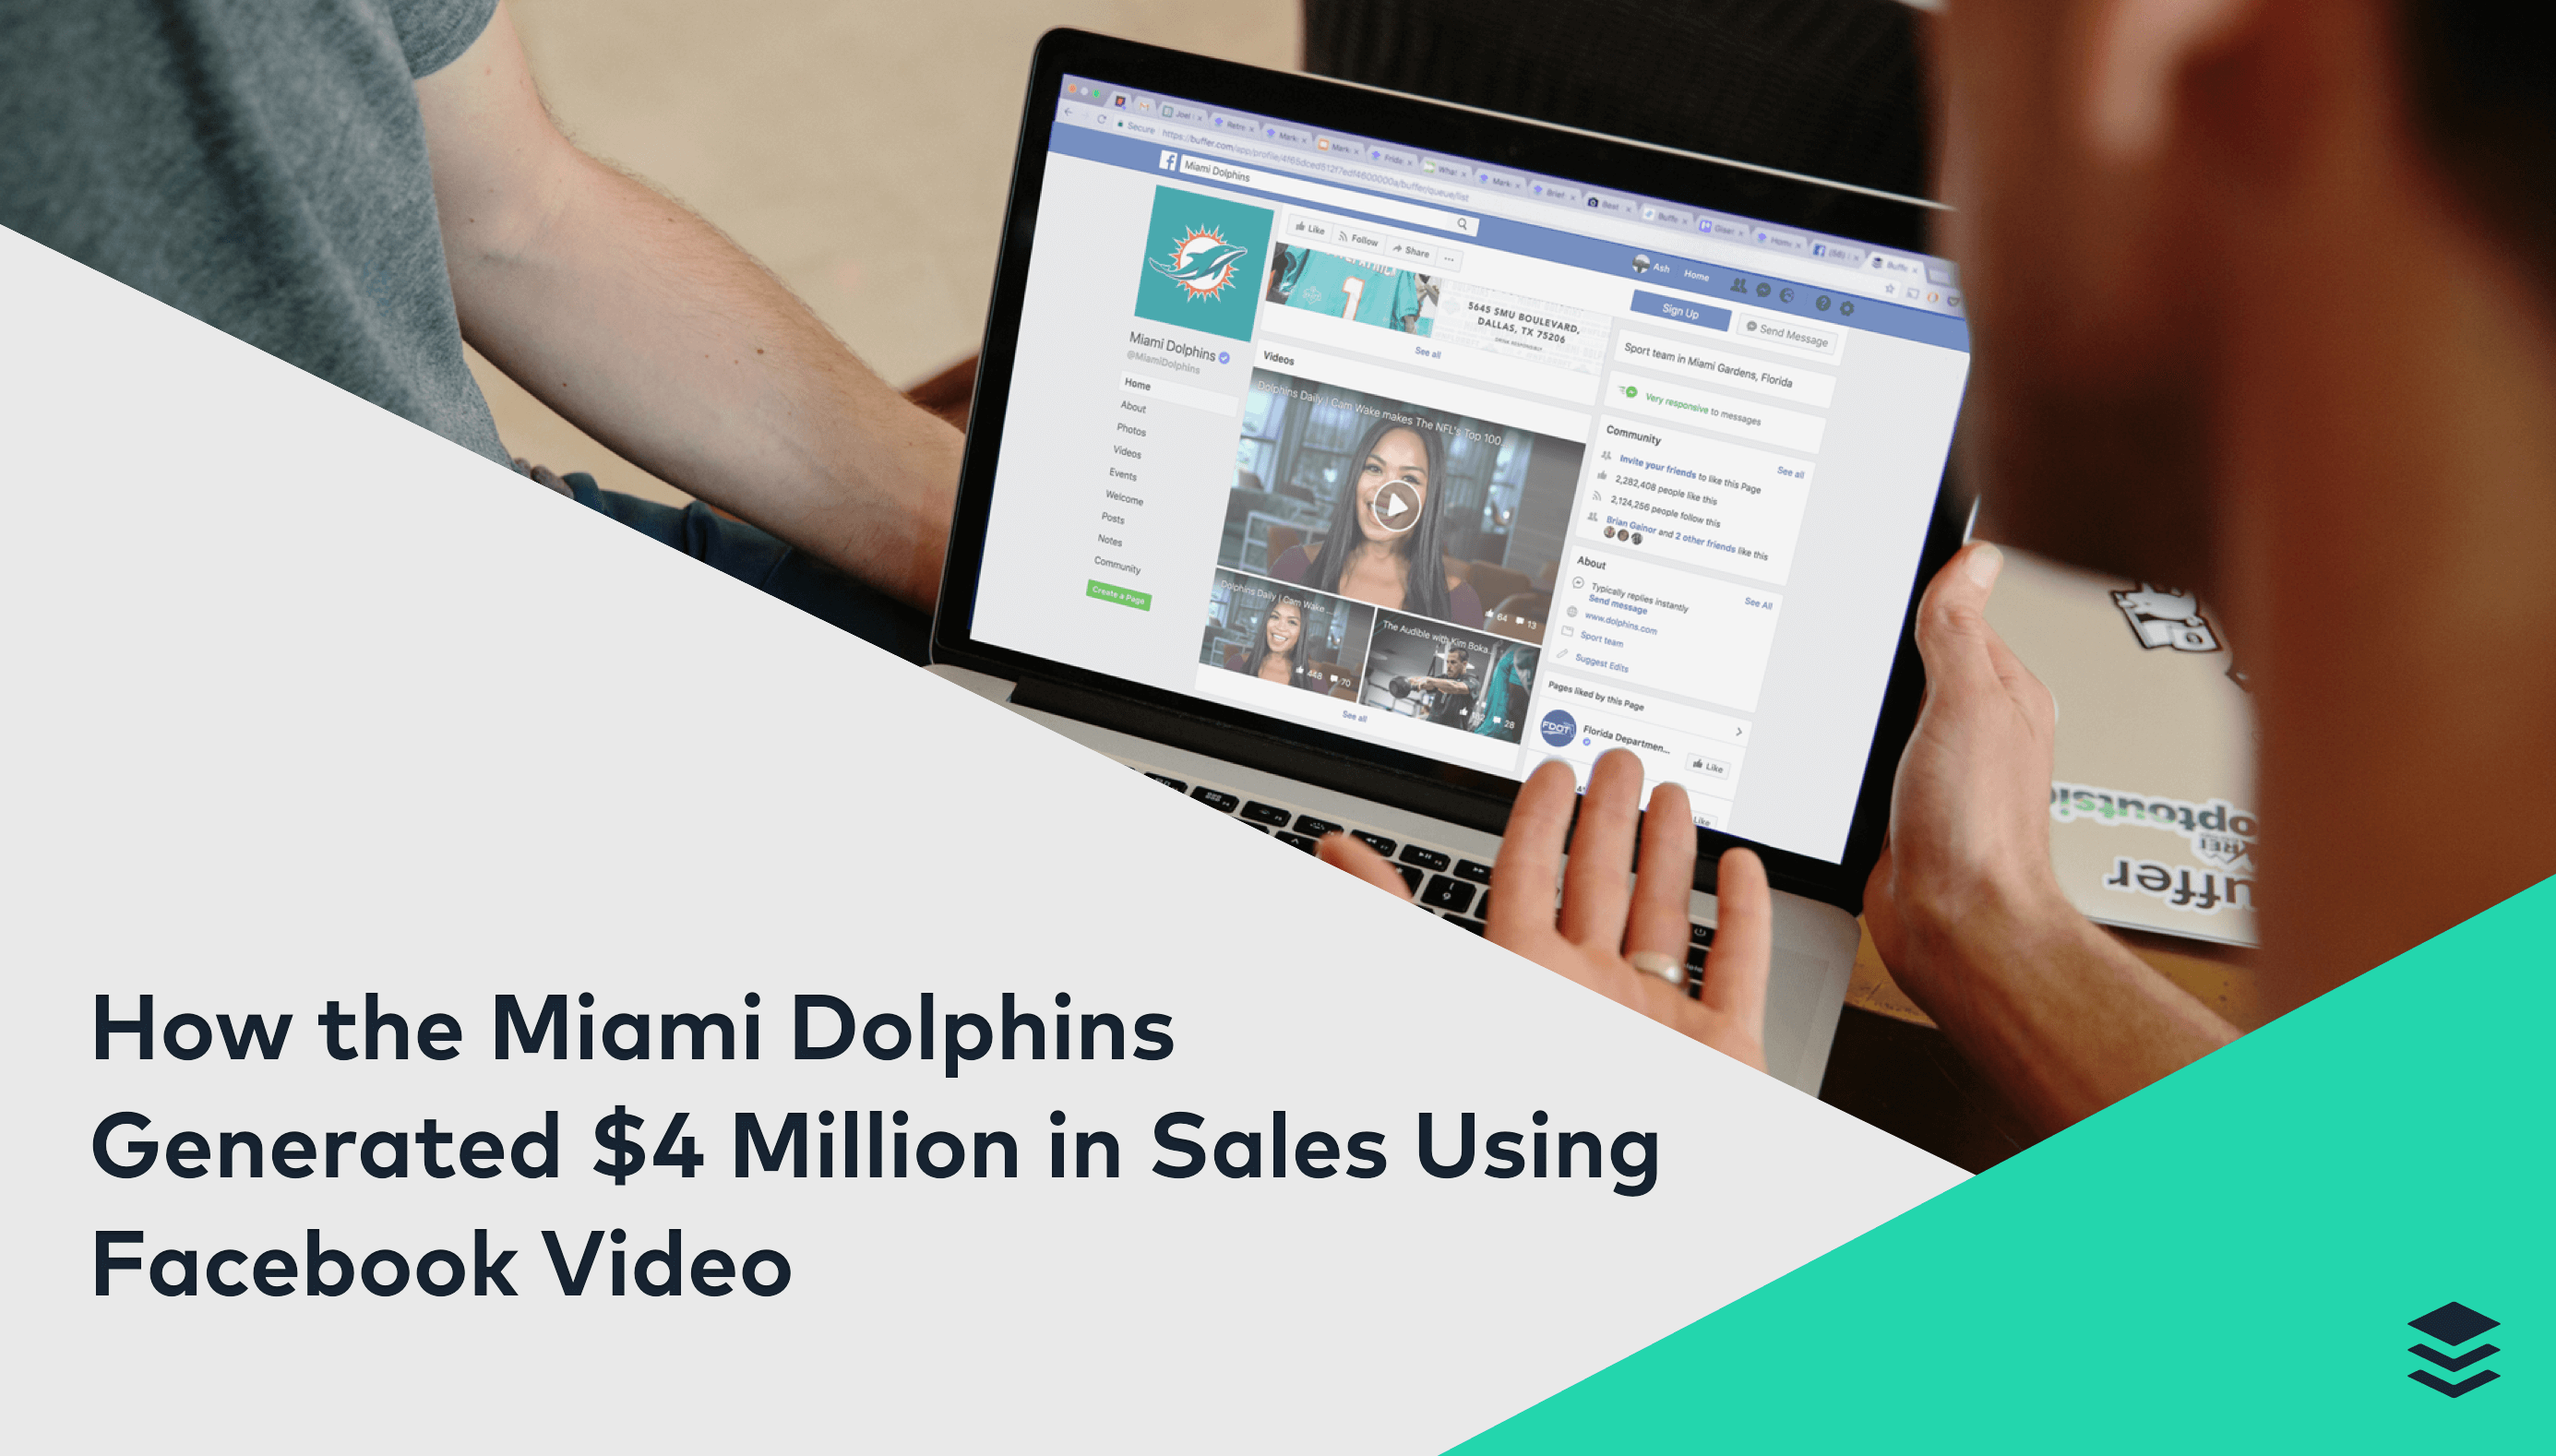 How the Miami Dolphins Generated $4 Million in Sales Using Facebook Video